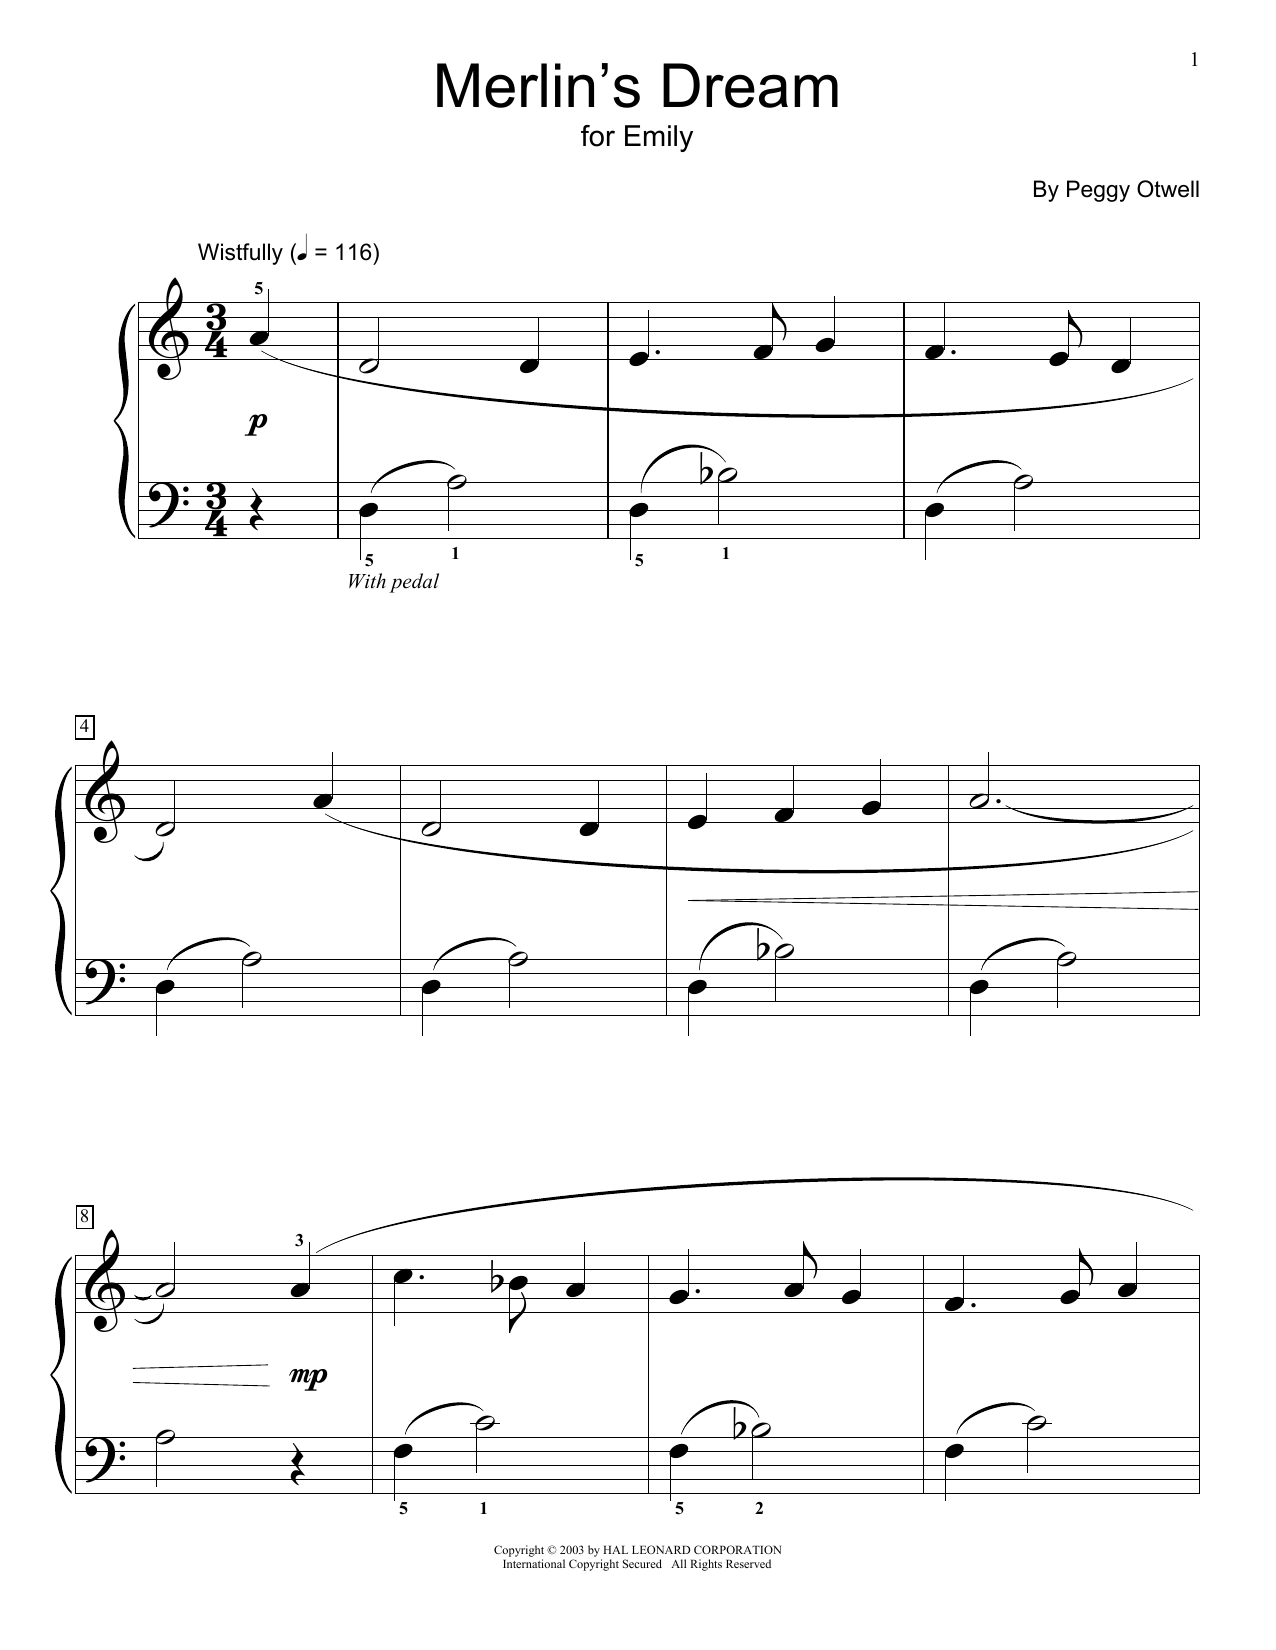 Peggy Otwell Merlin's Dream sheet music notes and chords. Download Printable PDF.